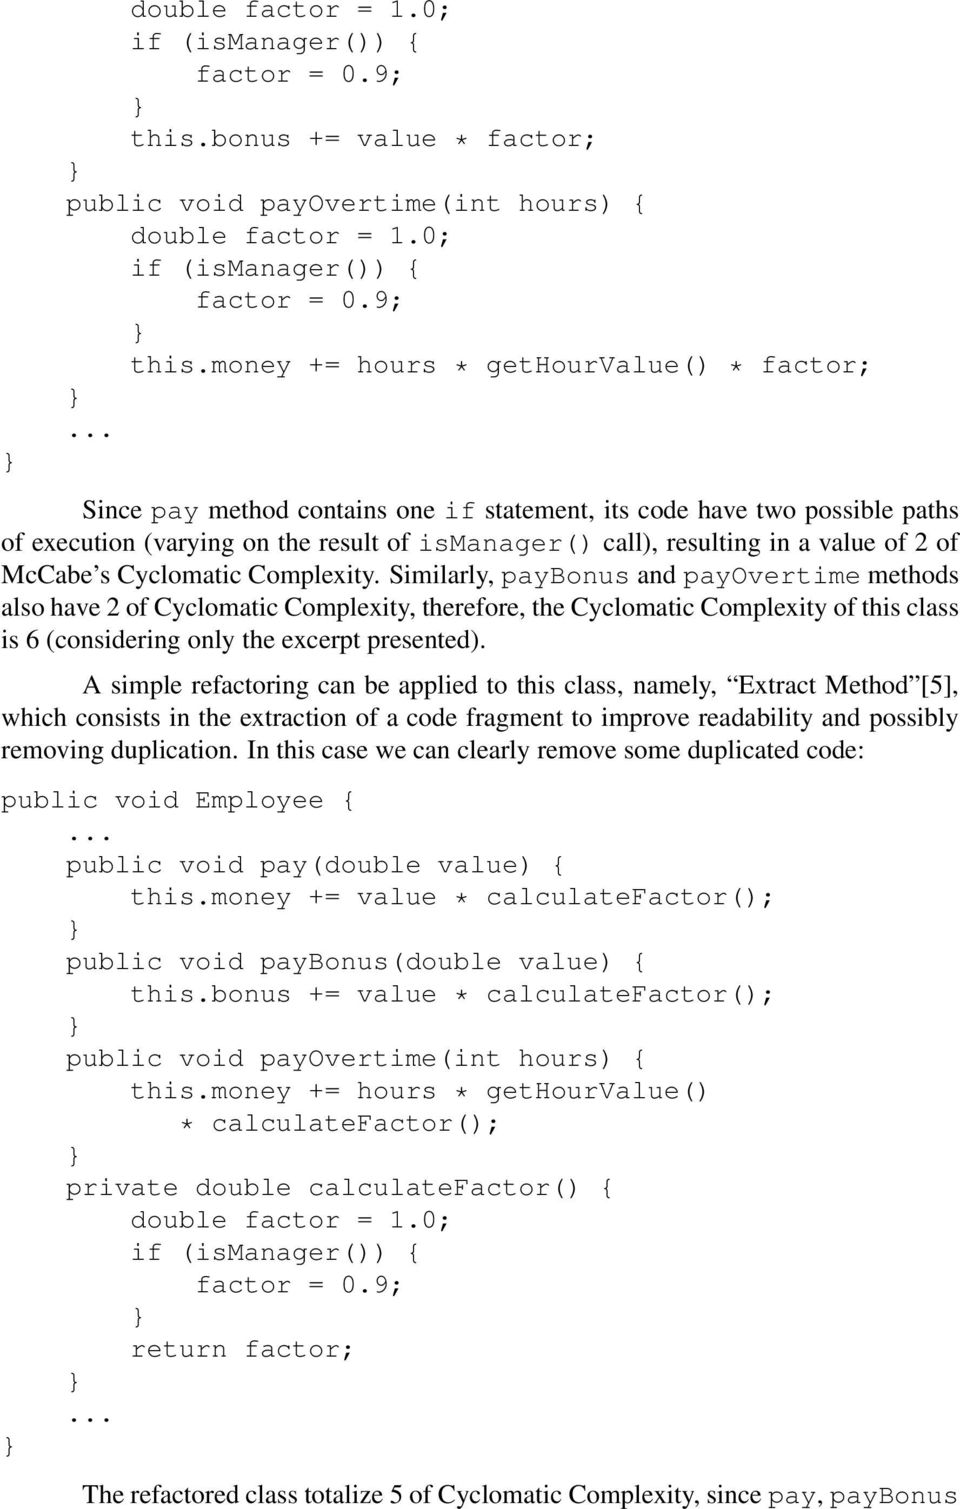 Similarly, paybonus and payovertime methods also have 2 of Cyclomatic Complexity, therefore, the Cyclomatic Complexity of this class is 6 (considering only the excerpt presented).